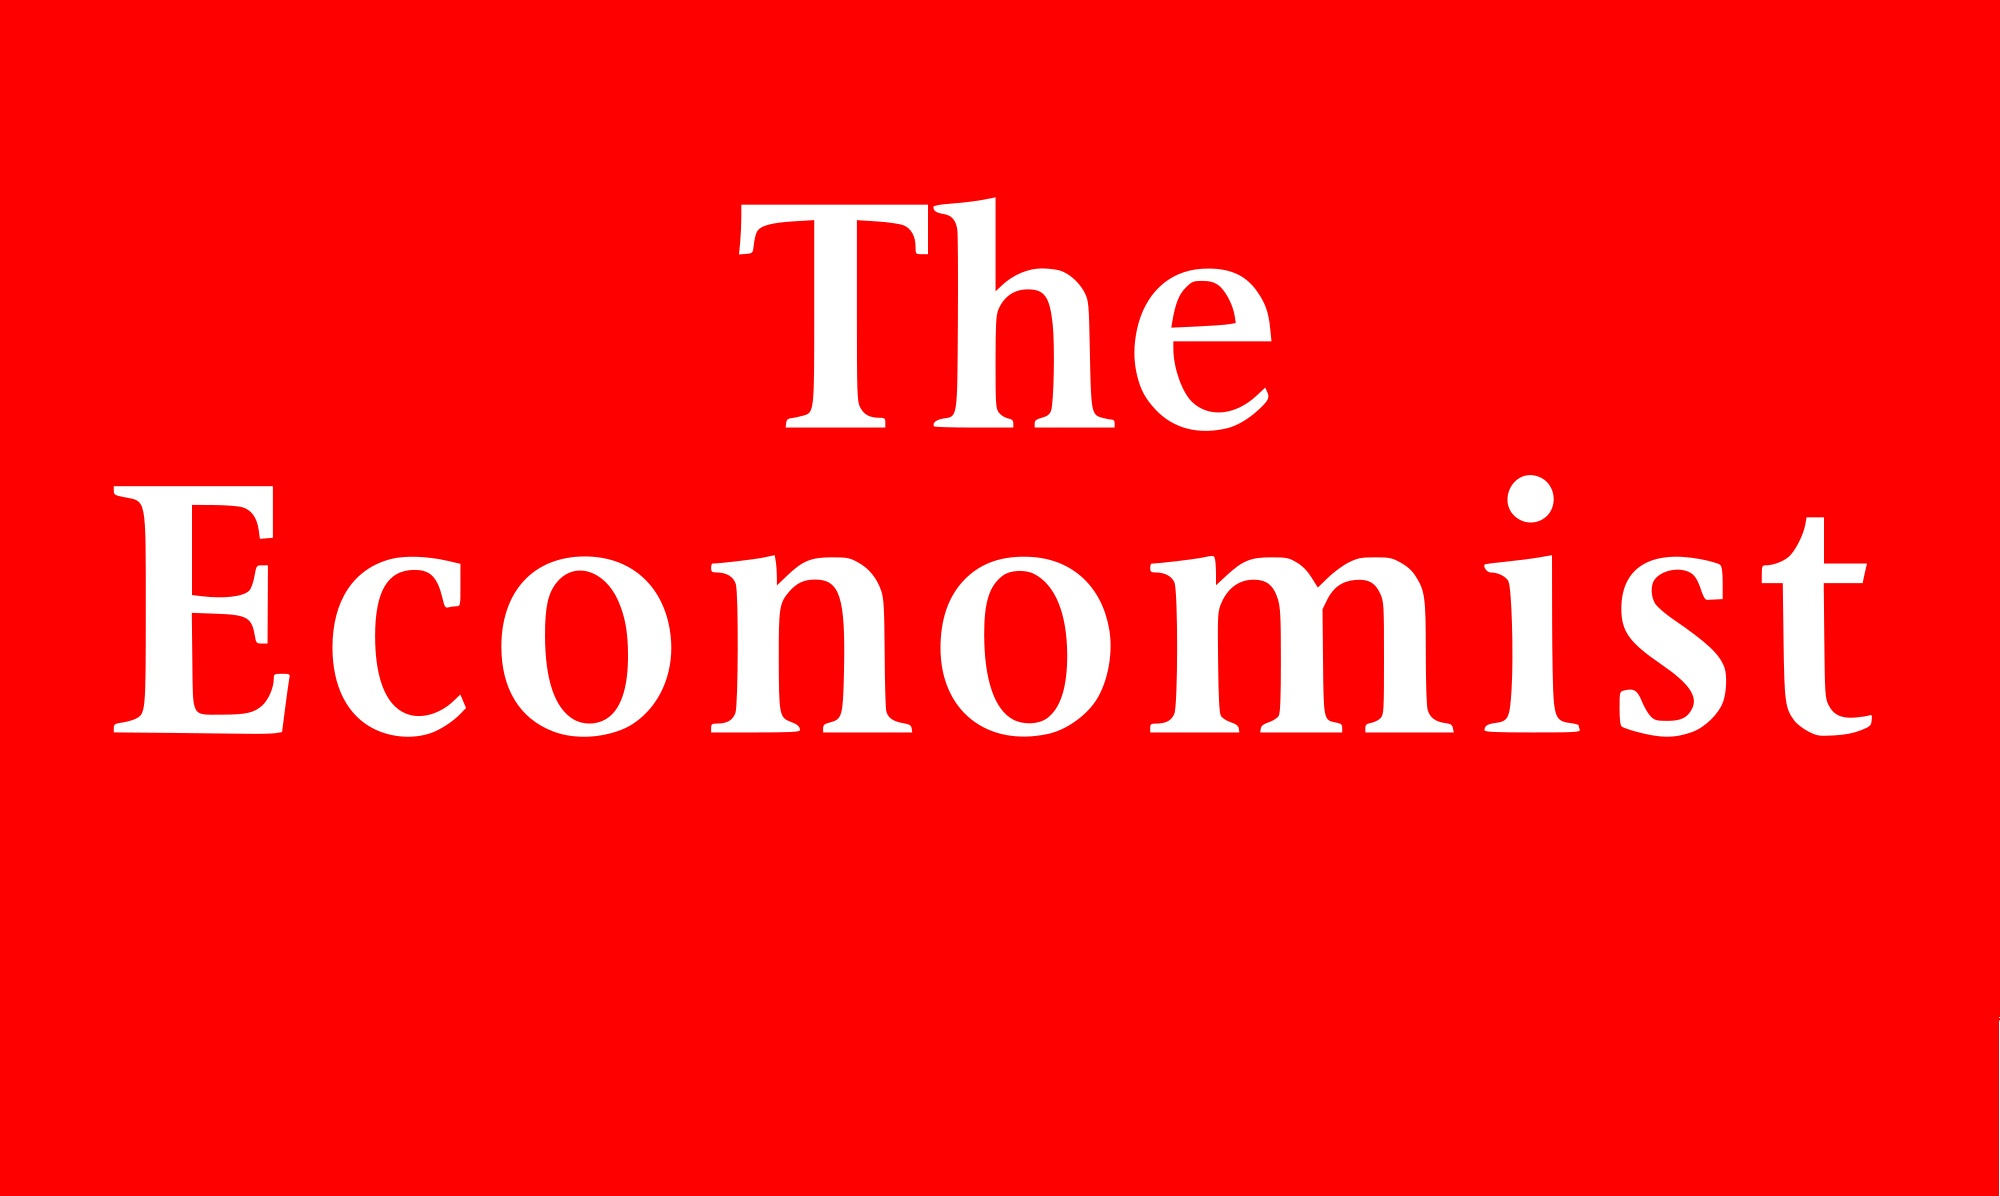 LA's VR/AR industry and digital media sector explored by The Economist